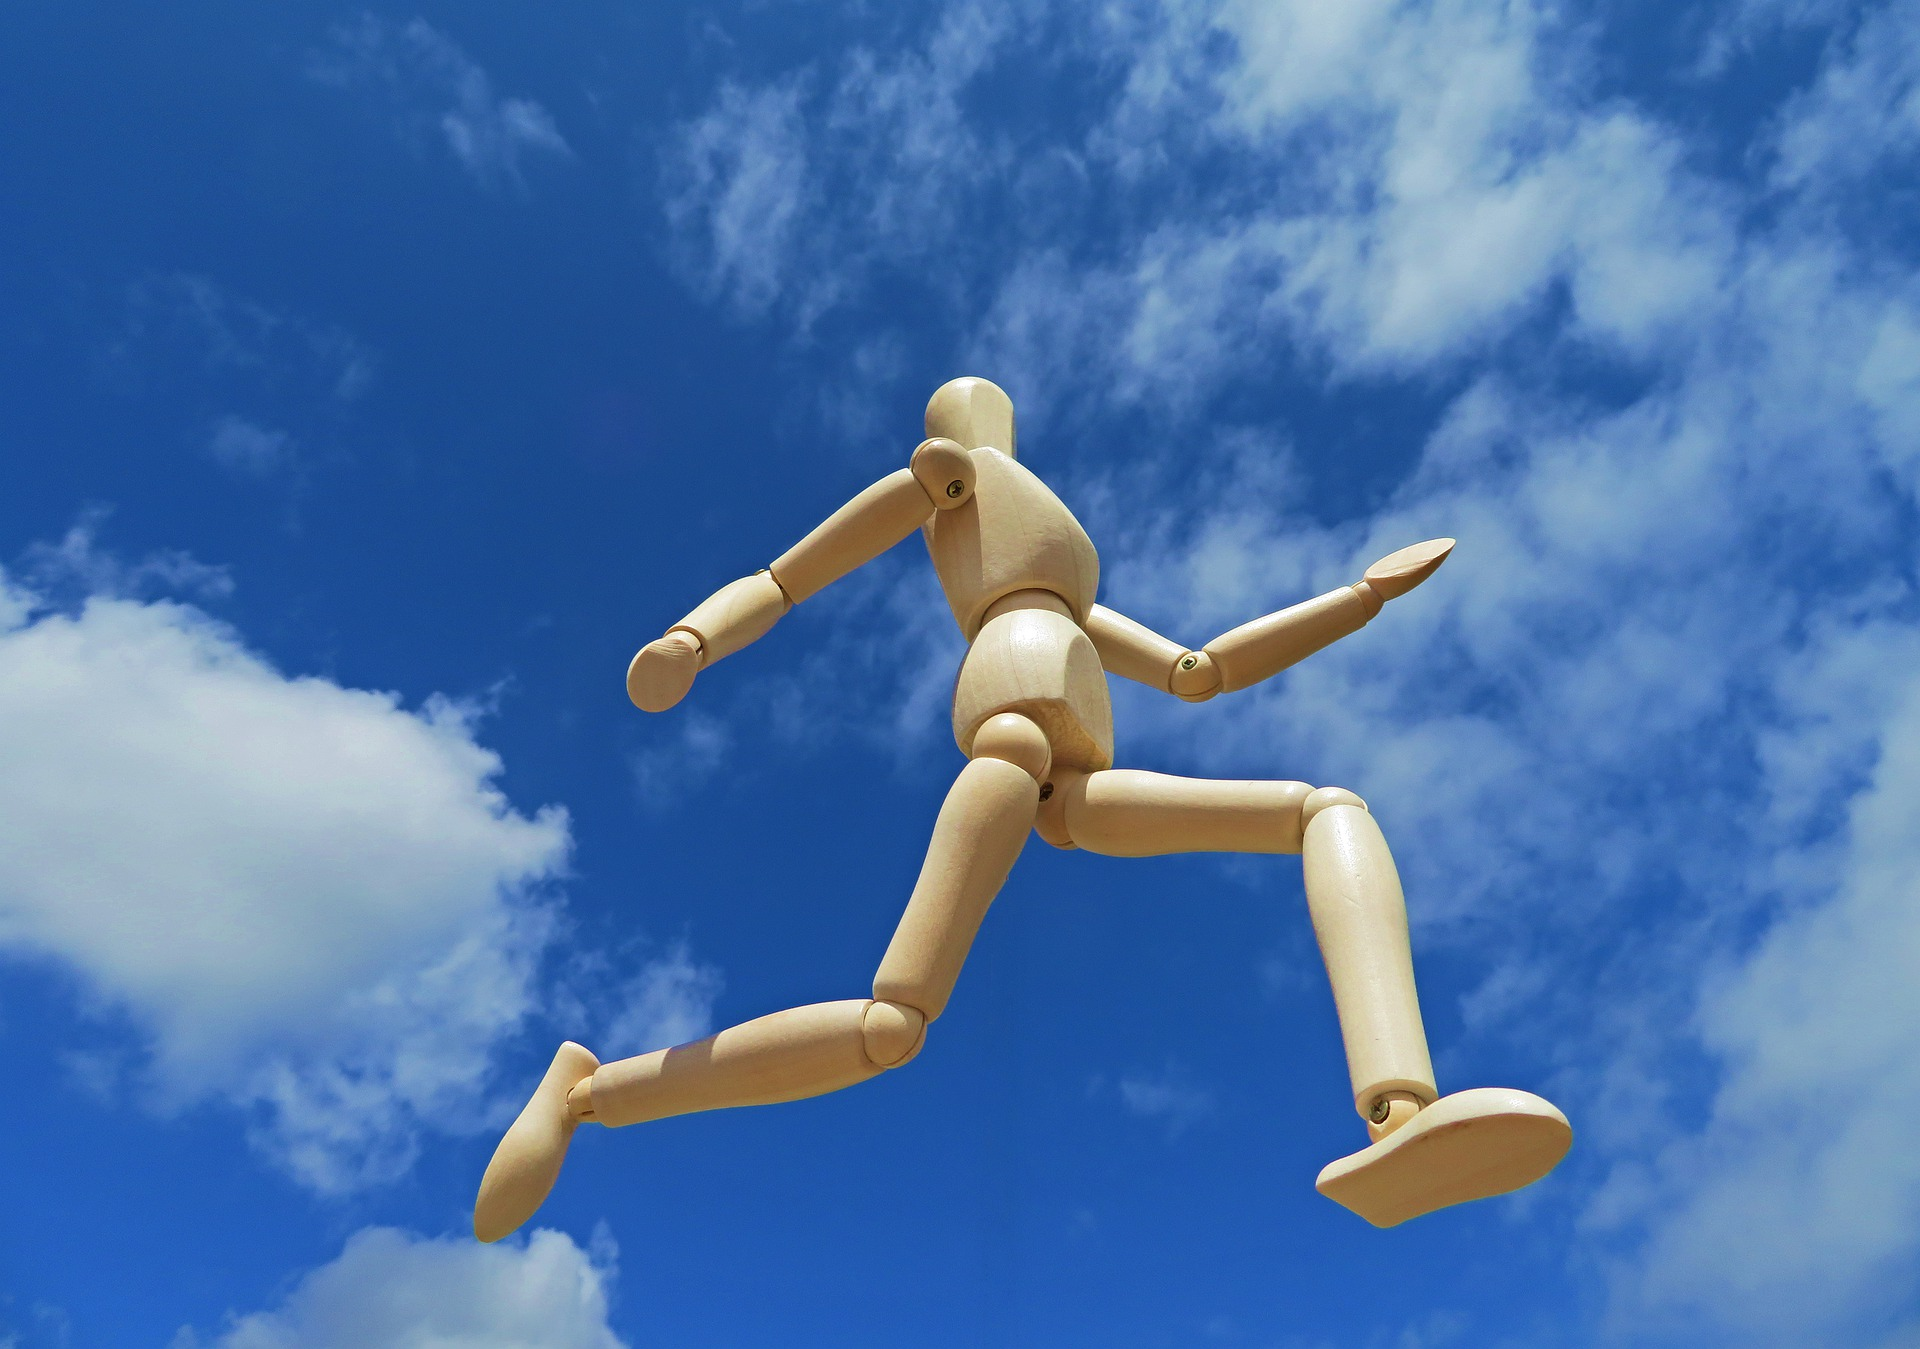 Reaching your potential - wooden doll walking in the air for personal development